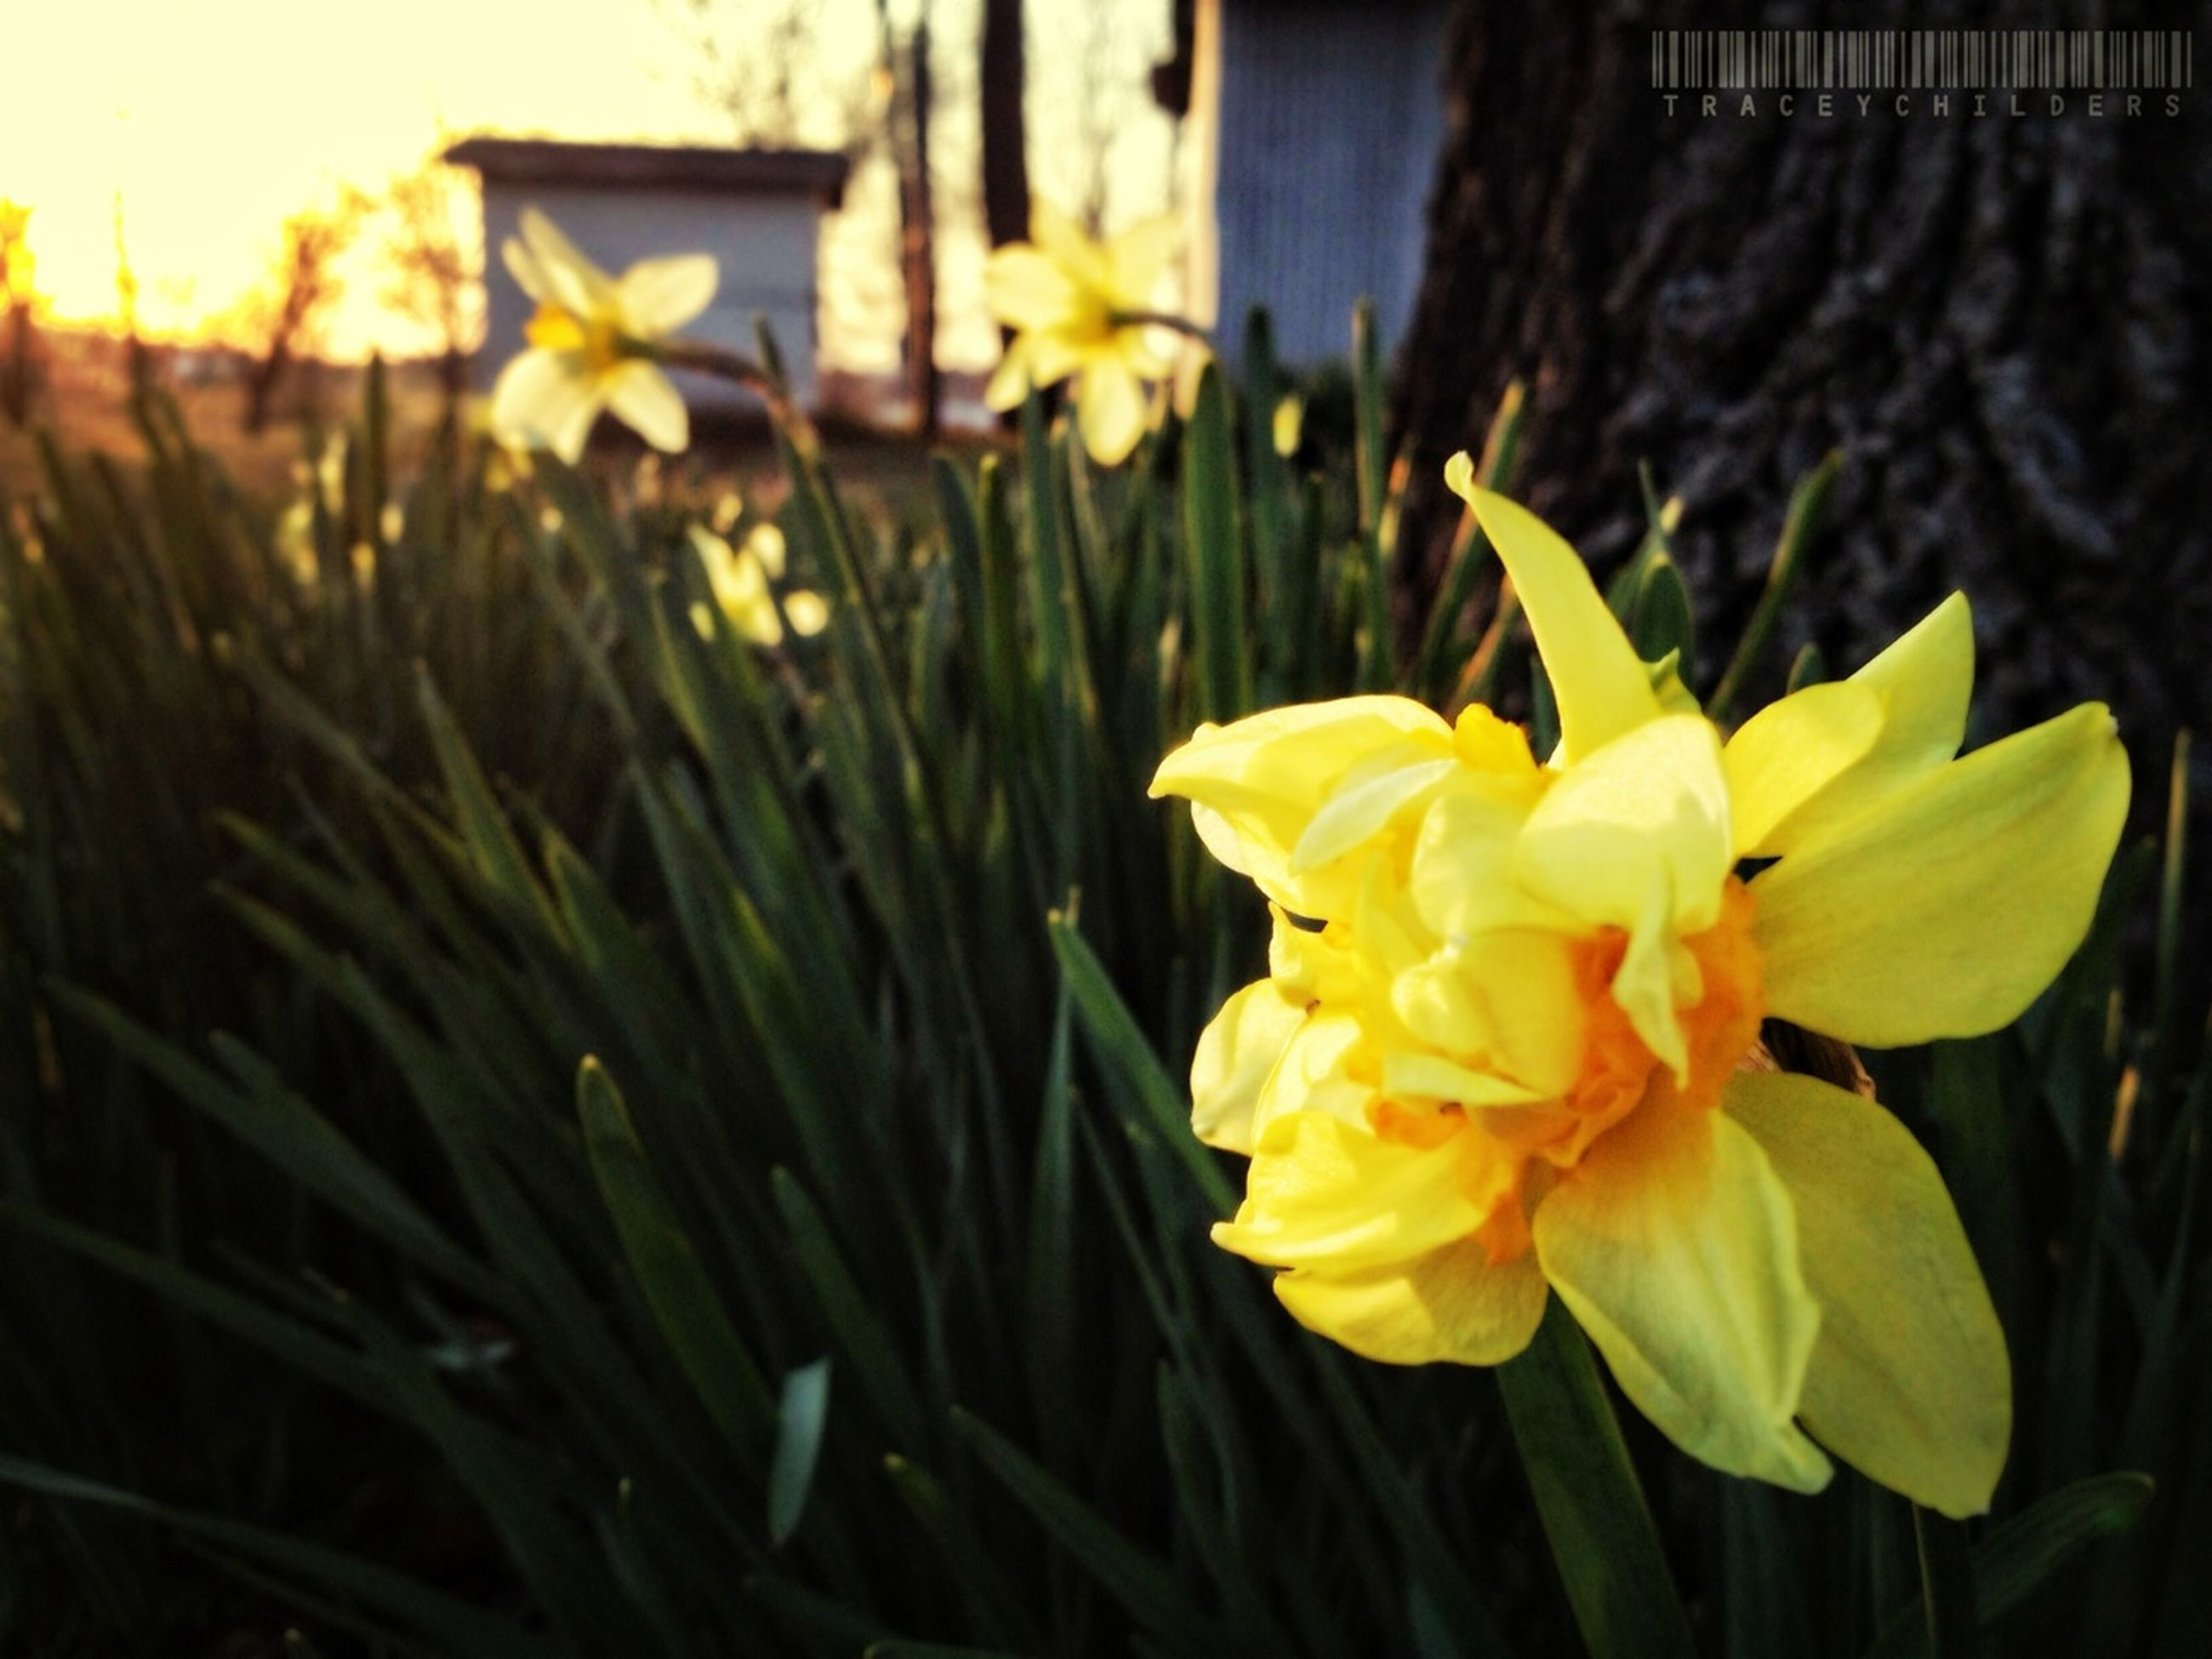 flower, yellow, freshness, petal, fragility, growth, flower head, focus on foreground, plant, beauty in nature, blooming, close-up, nature, stem, field, in bloom, selective focus, outdoors, no people, day